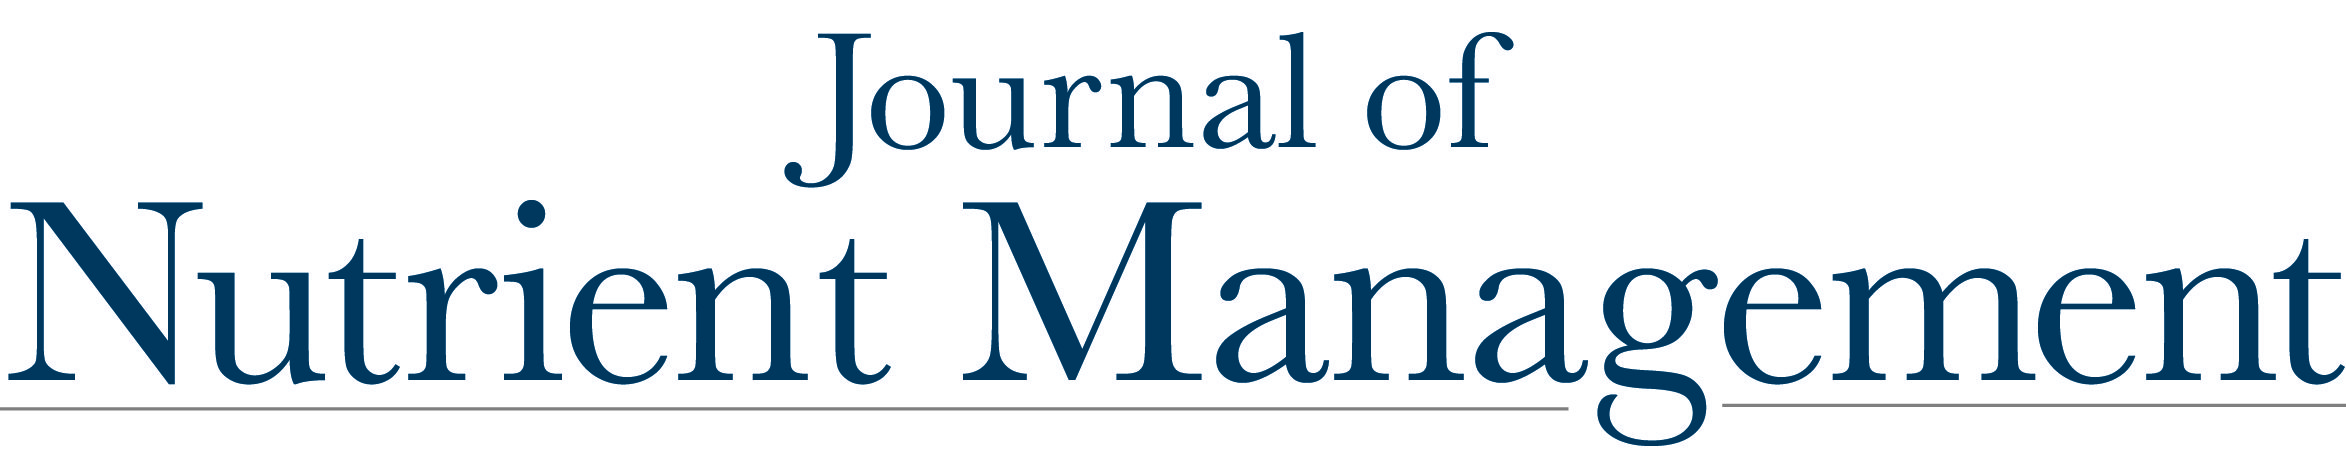 Journal of Nutrient Management